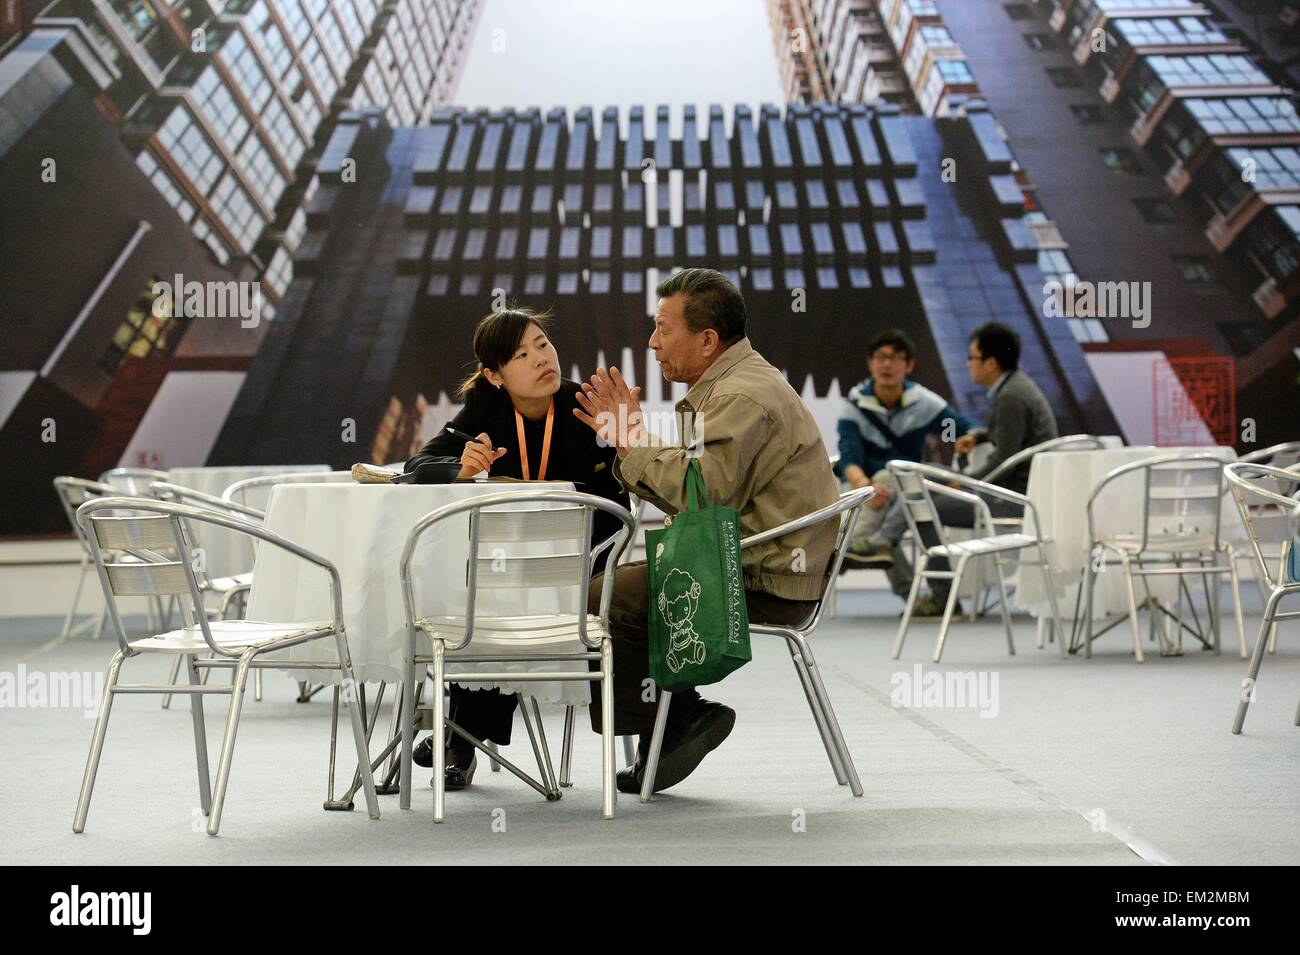 (150416) -- XI'AN, April 16, 2015 (Xinhua) -- A resident consults about house property information at the Xi'an Stock Photo